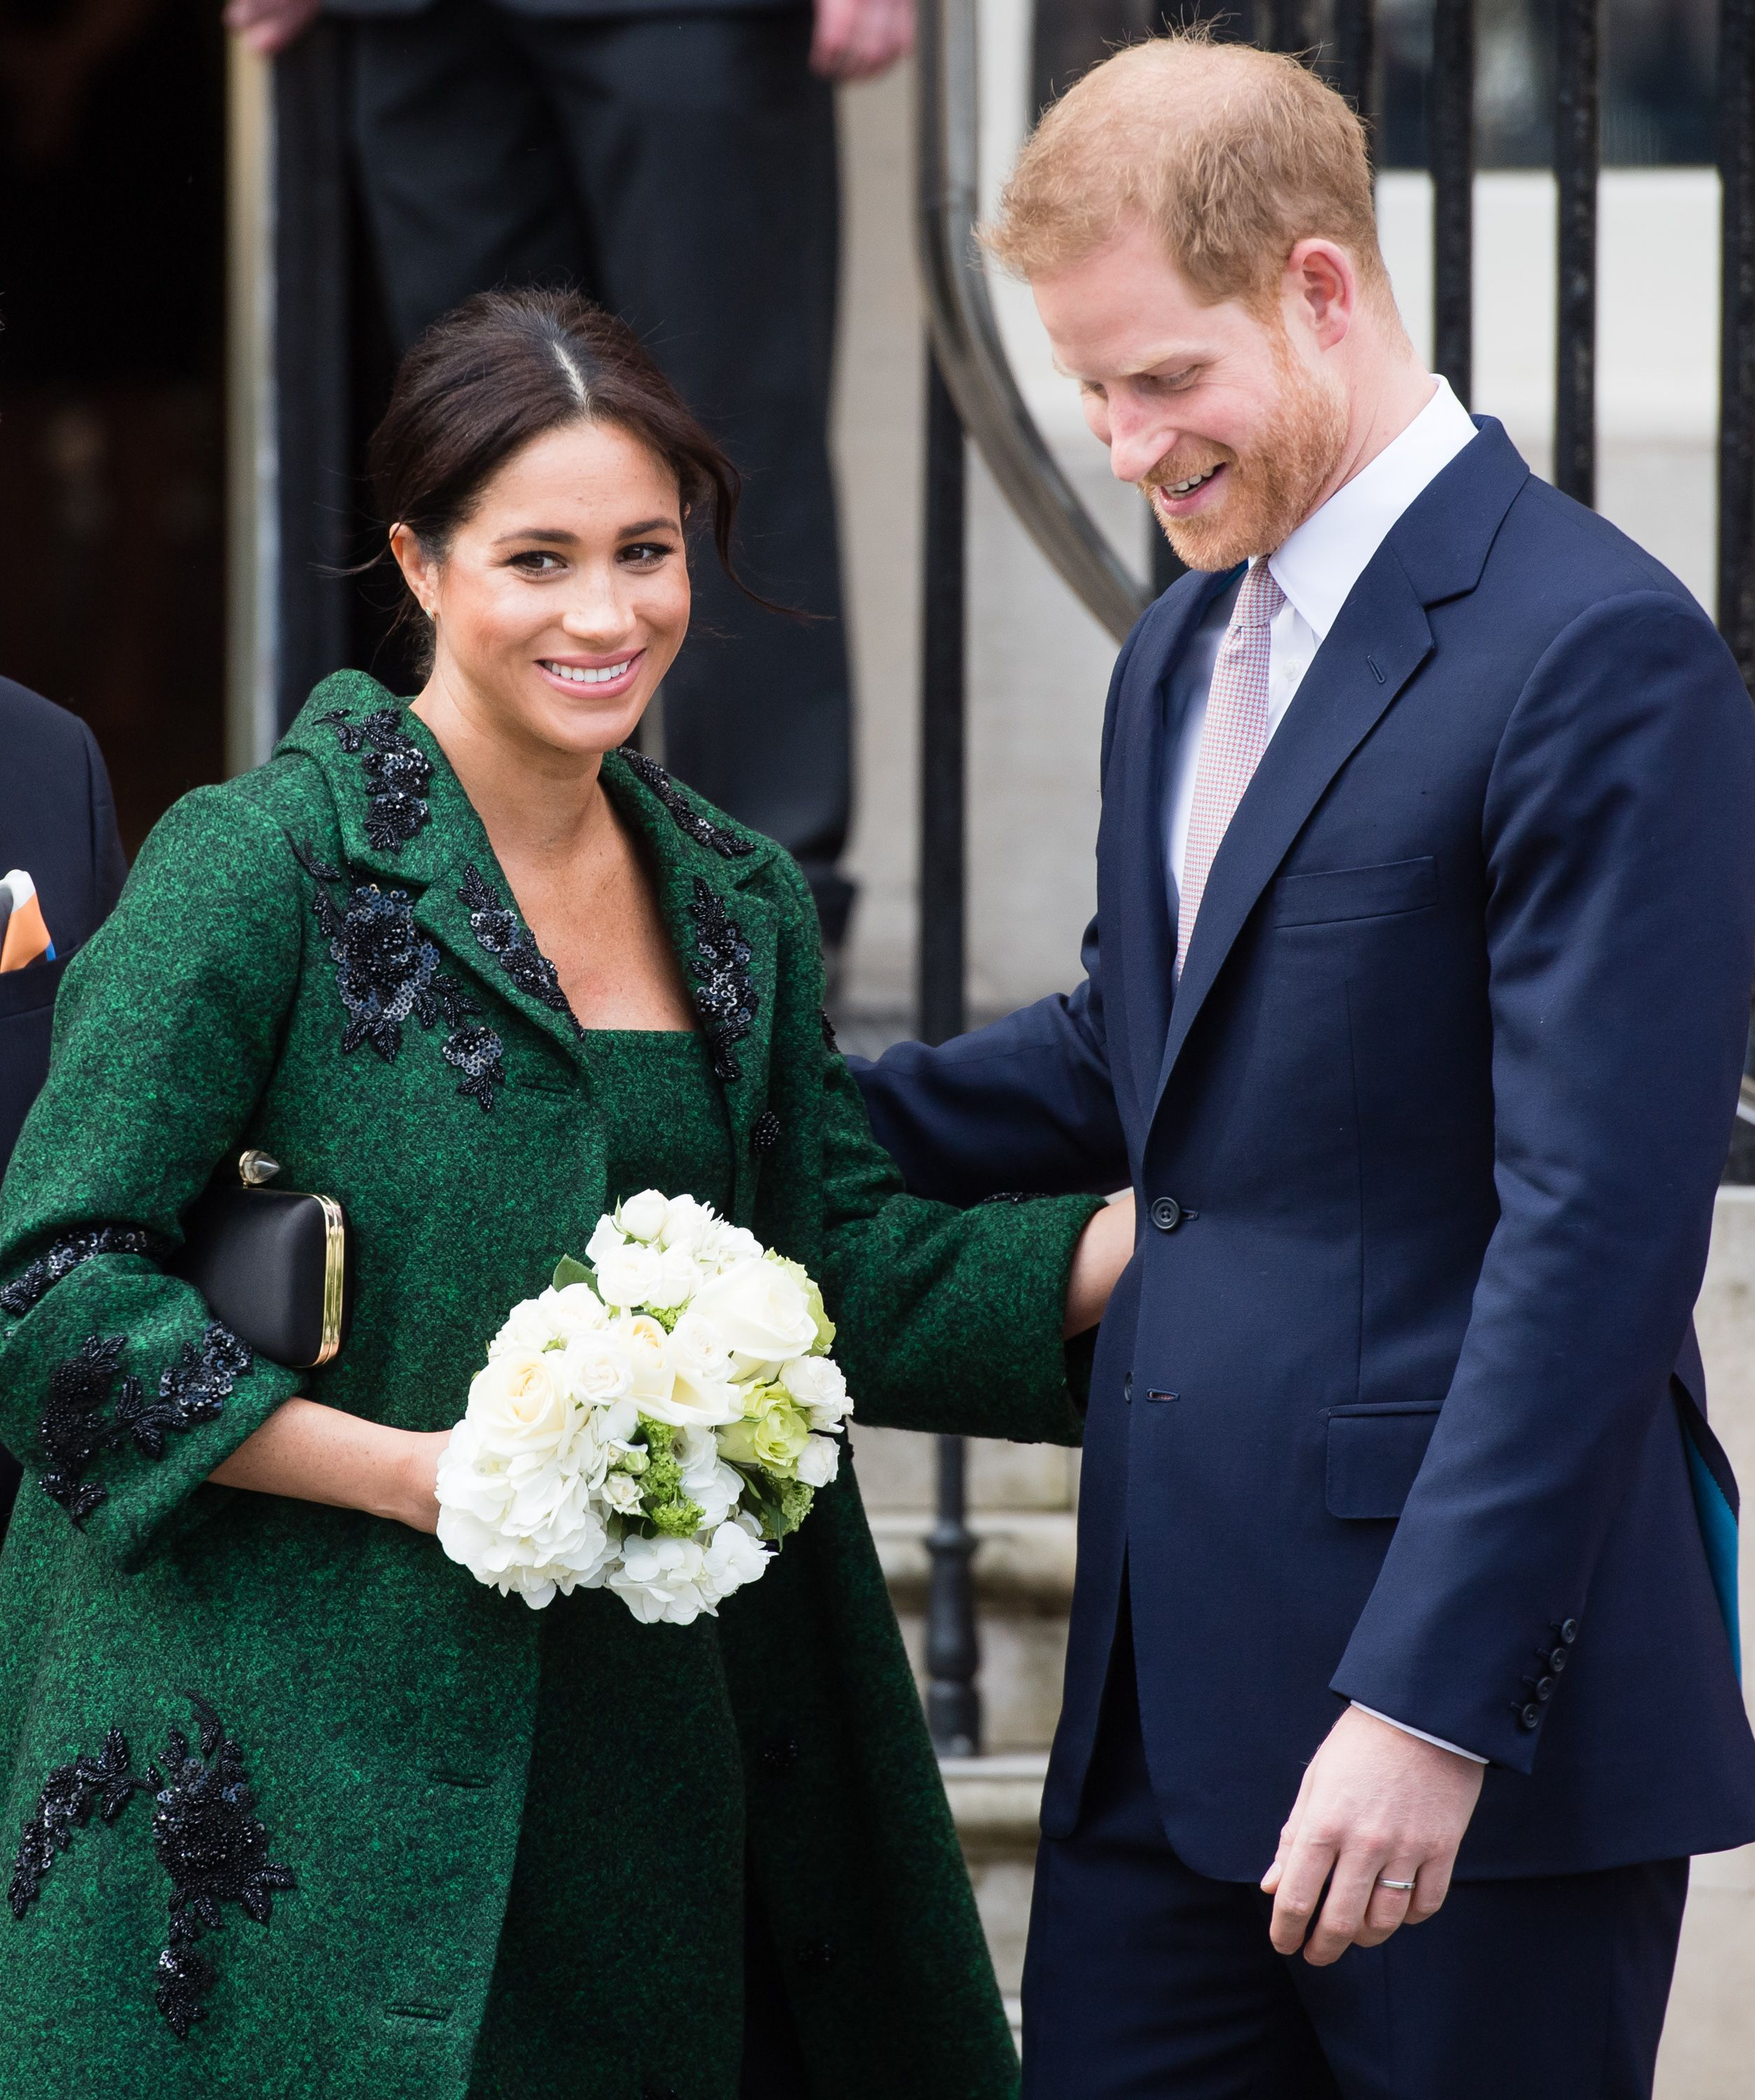 Flipboard: The Royal Family Welcomes Prince Harry And